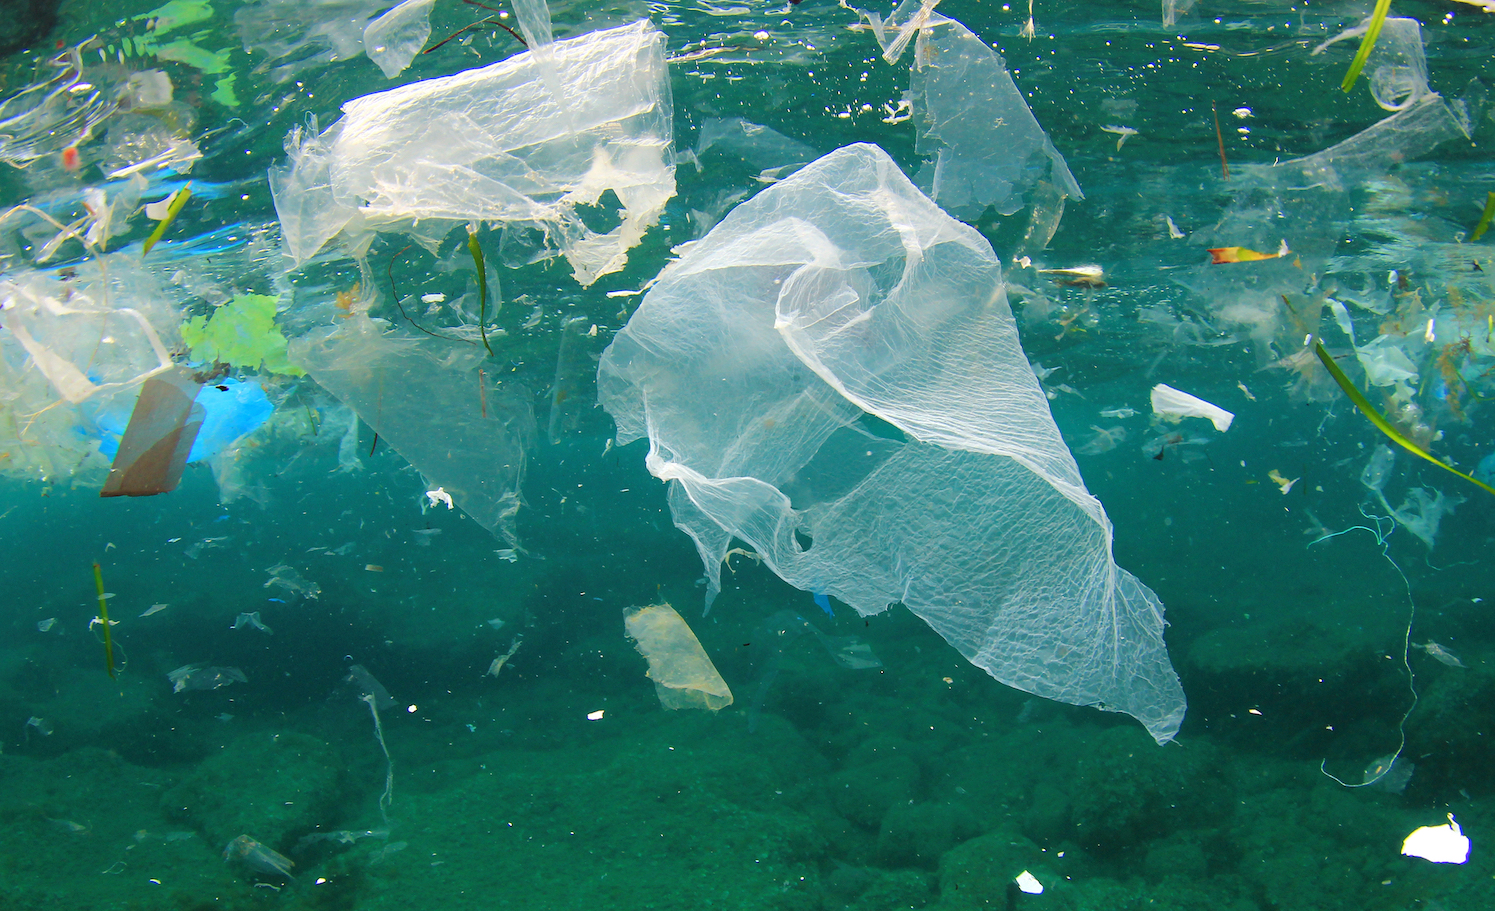 As if the growing volume of plastic polluting the world's oceans wasn't enough of a cause for concern, a new study has found that harmful bacteria can quickly grow on plastic bags in the ocean in as little as 40 days.